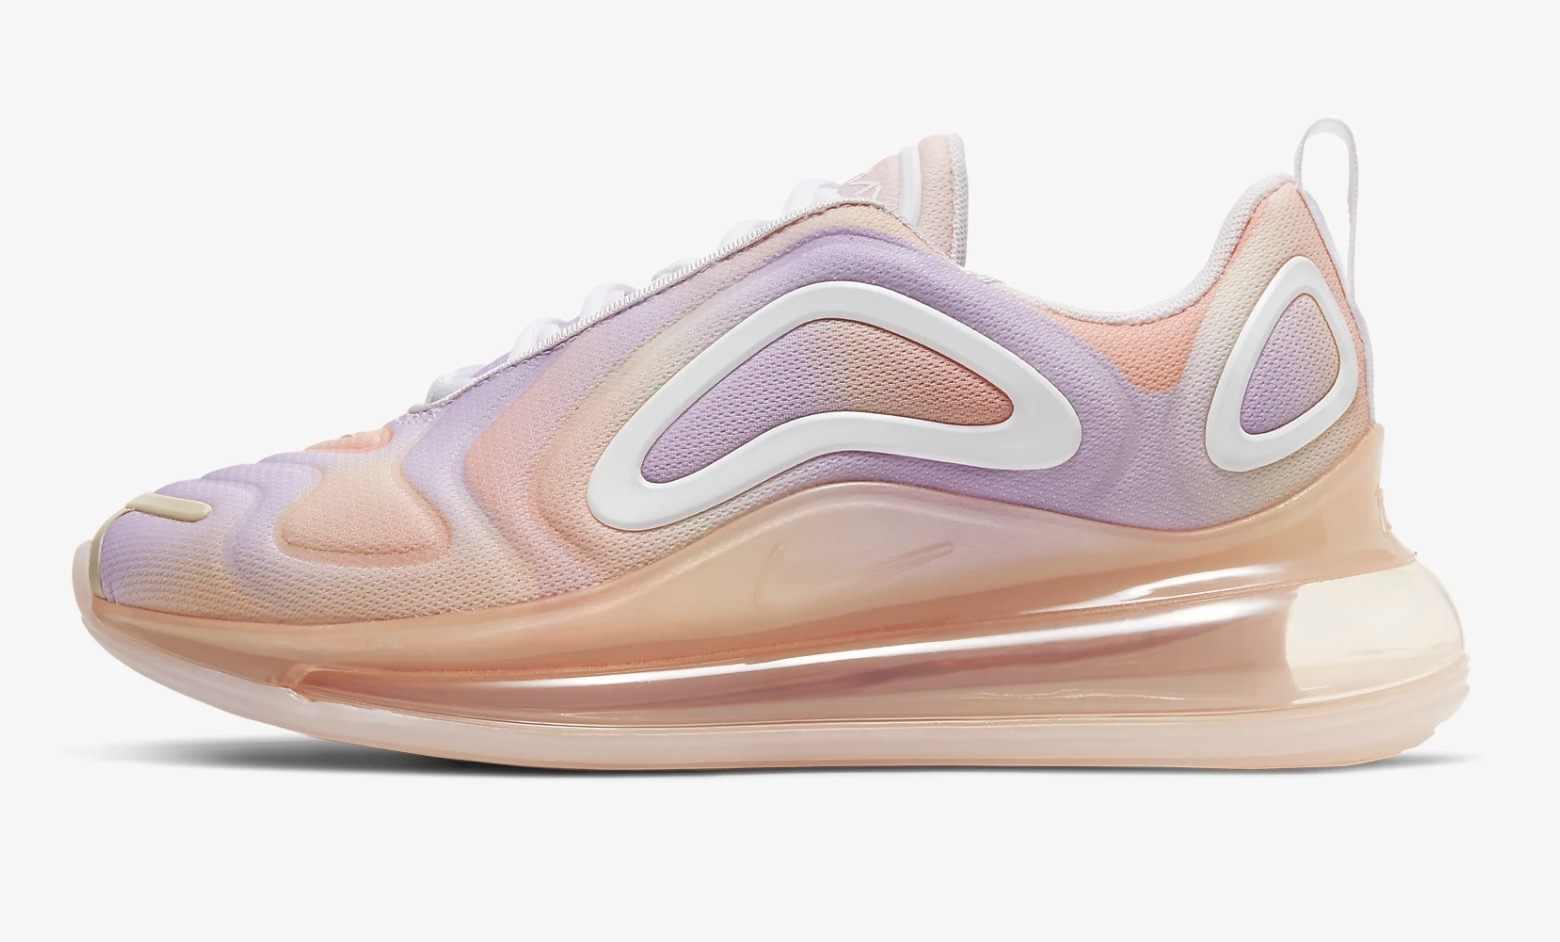 It Doesn't Get Prettier Than This Tie-Dye Style Air Max 720 'Print' In Light Violet 4